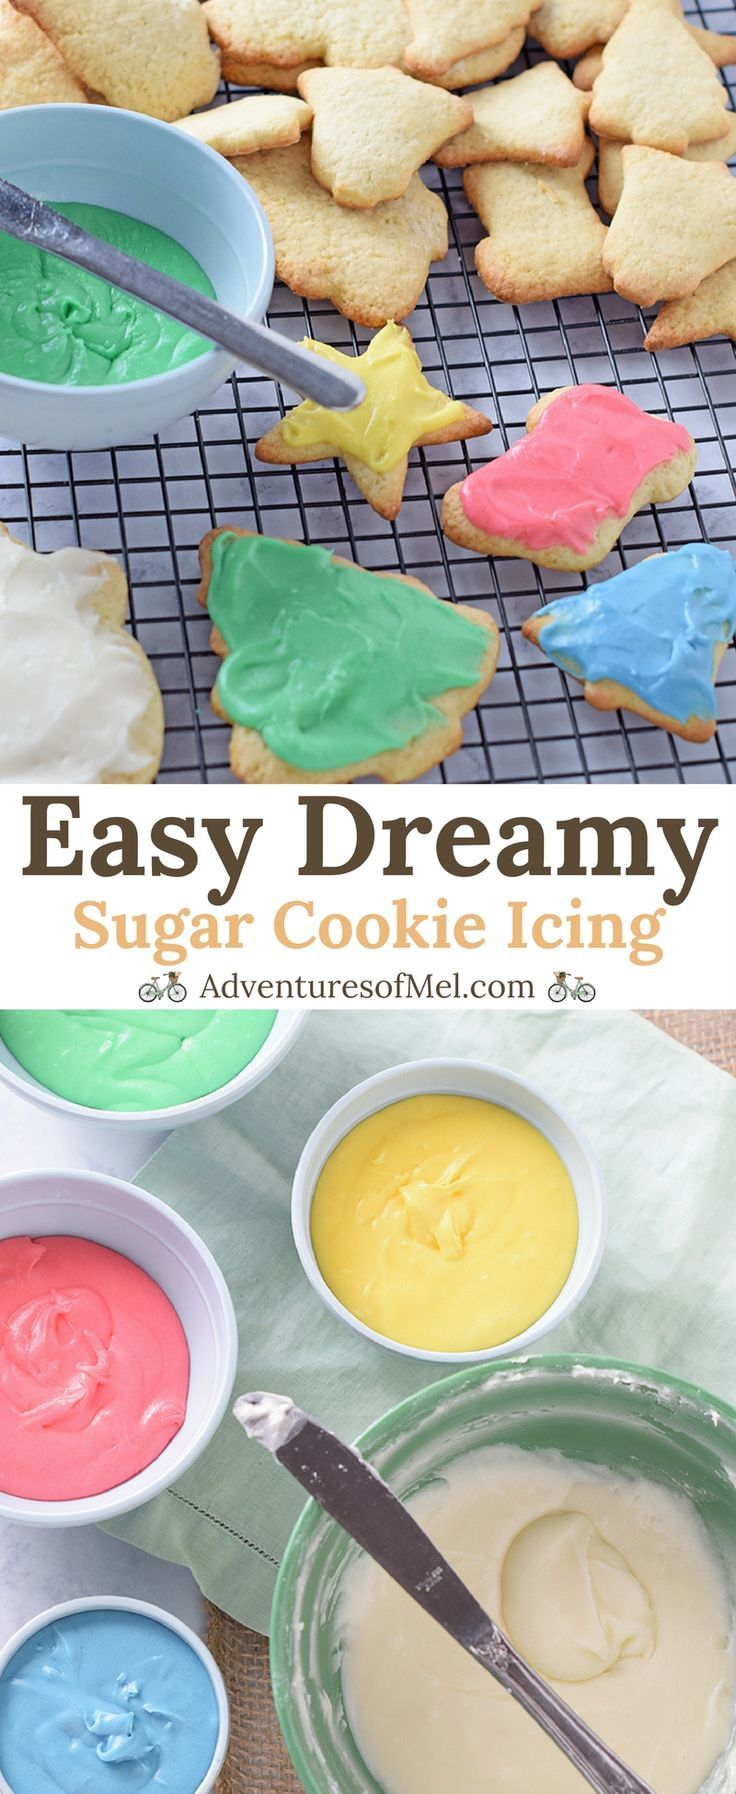 Easy Sugar Cookie Icing, made with powdered sugar and a flavorful secret ingredient. So creamy delicious, my favorite recipe for cookie decorating. #icing #cookiedecorating